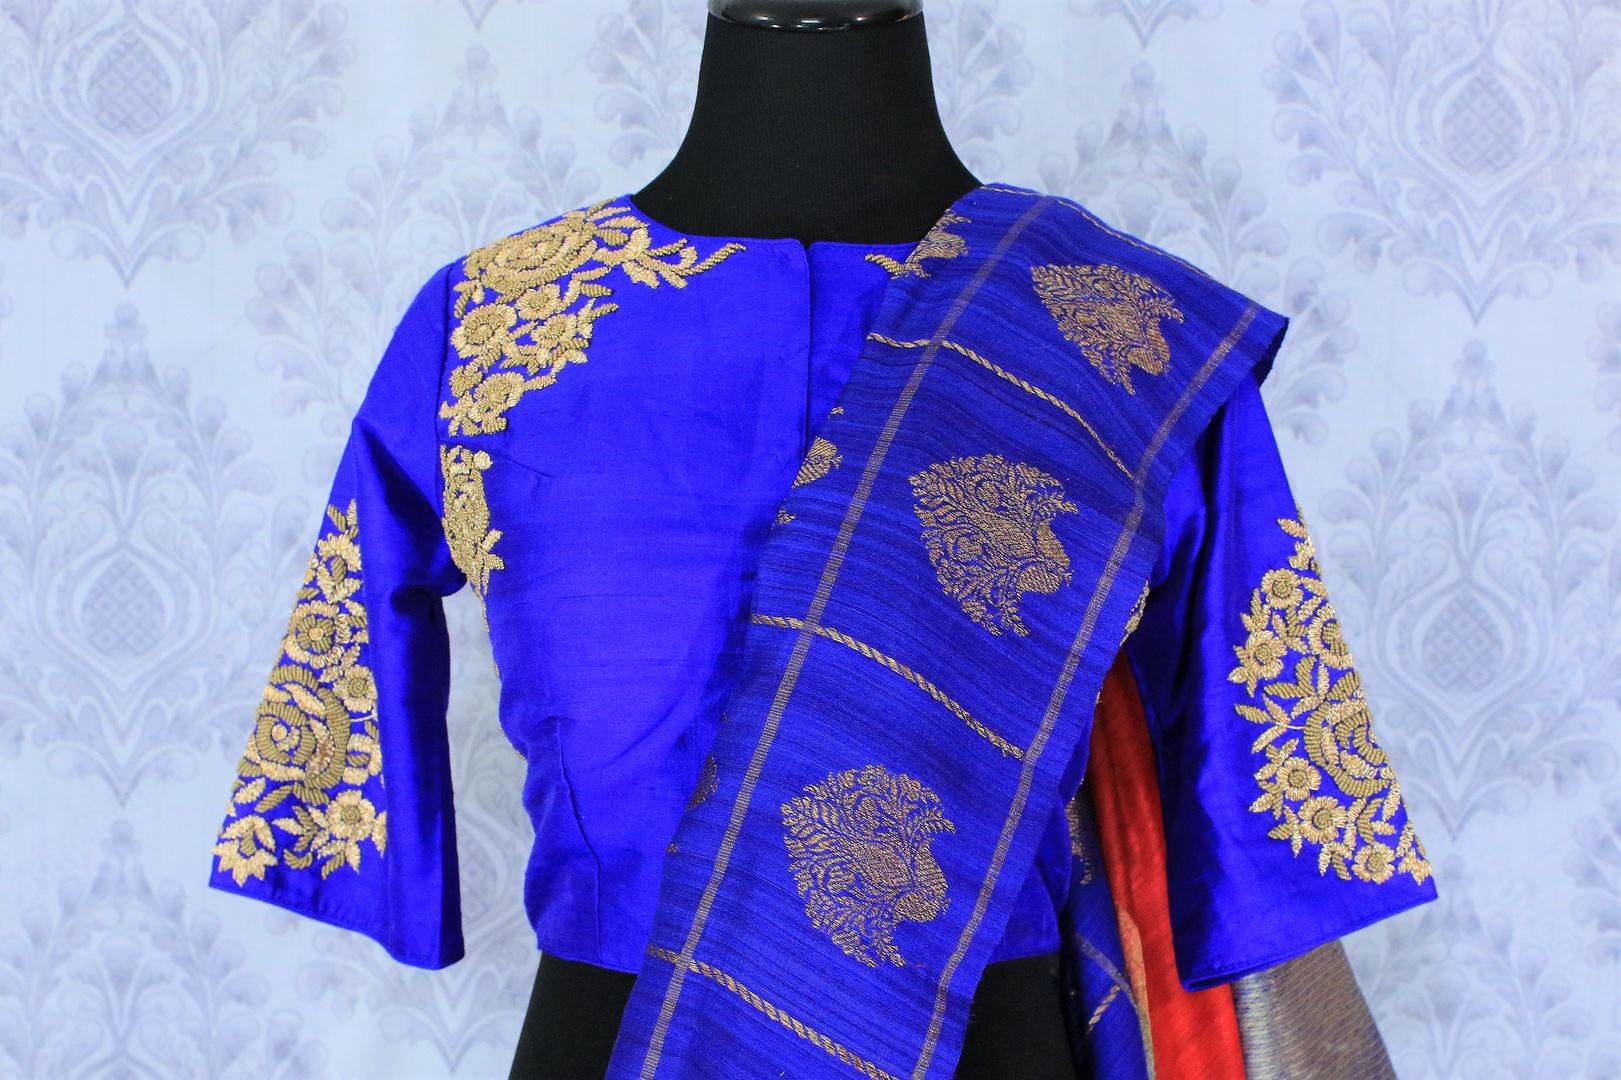 Buy red and blue tussar Benarasi saree online in USA with embroidered sari blouse. The saree is an alluring choice for a traditional look at weddings and special occasions. Buy more such Indian designer sarees, silk saris in USA at Pure Elegance exclusive fashion store or shop online at the comfort of your home.-blouse pallu